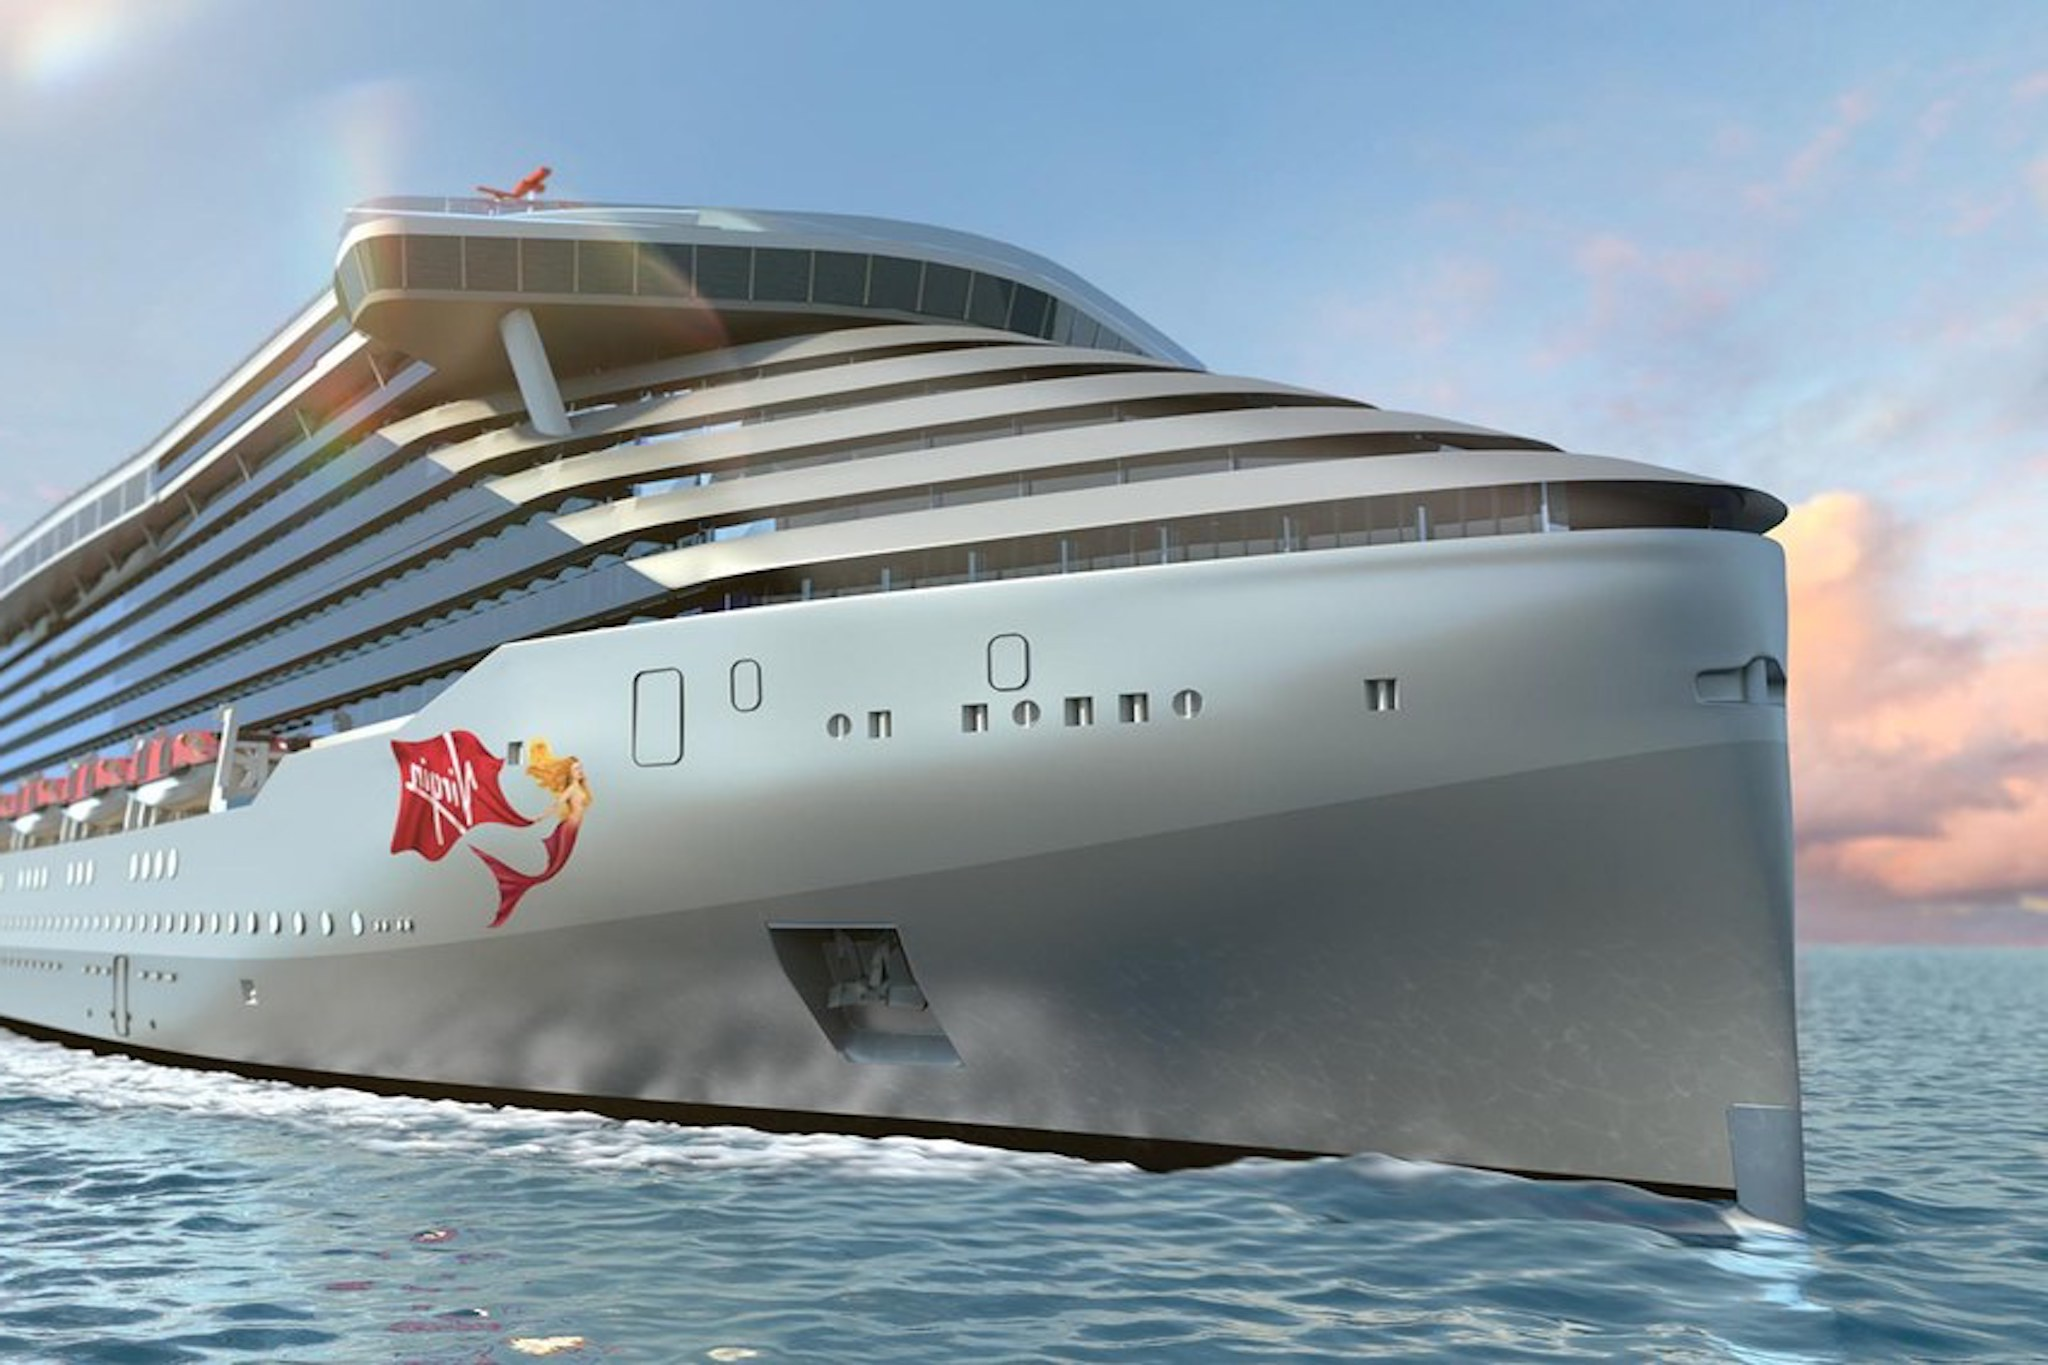 New kid on the block: Virgin Voyages first ship Scarlet Lady launches in 2020.